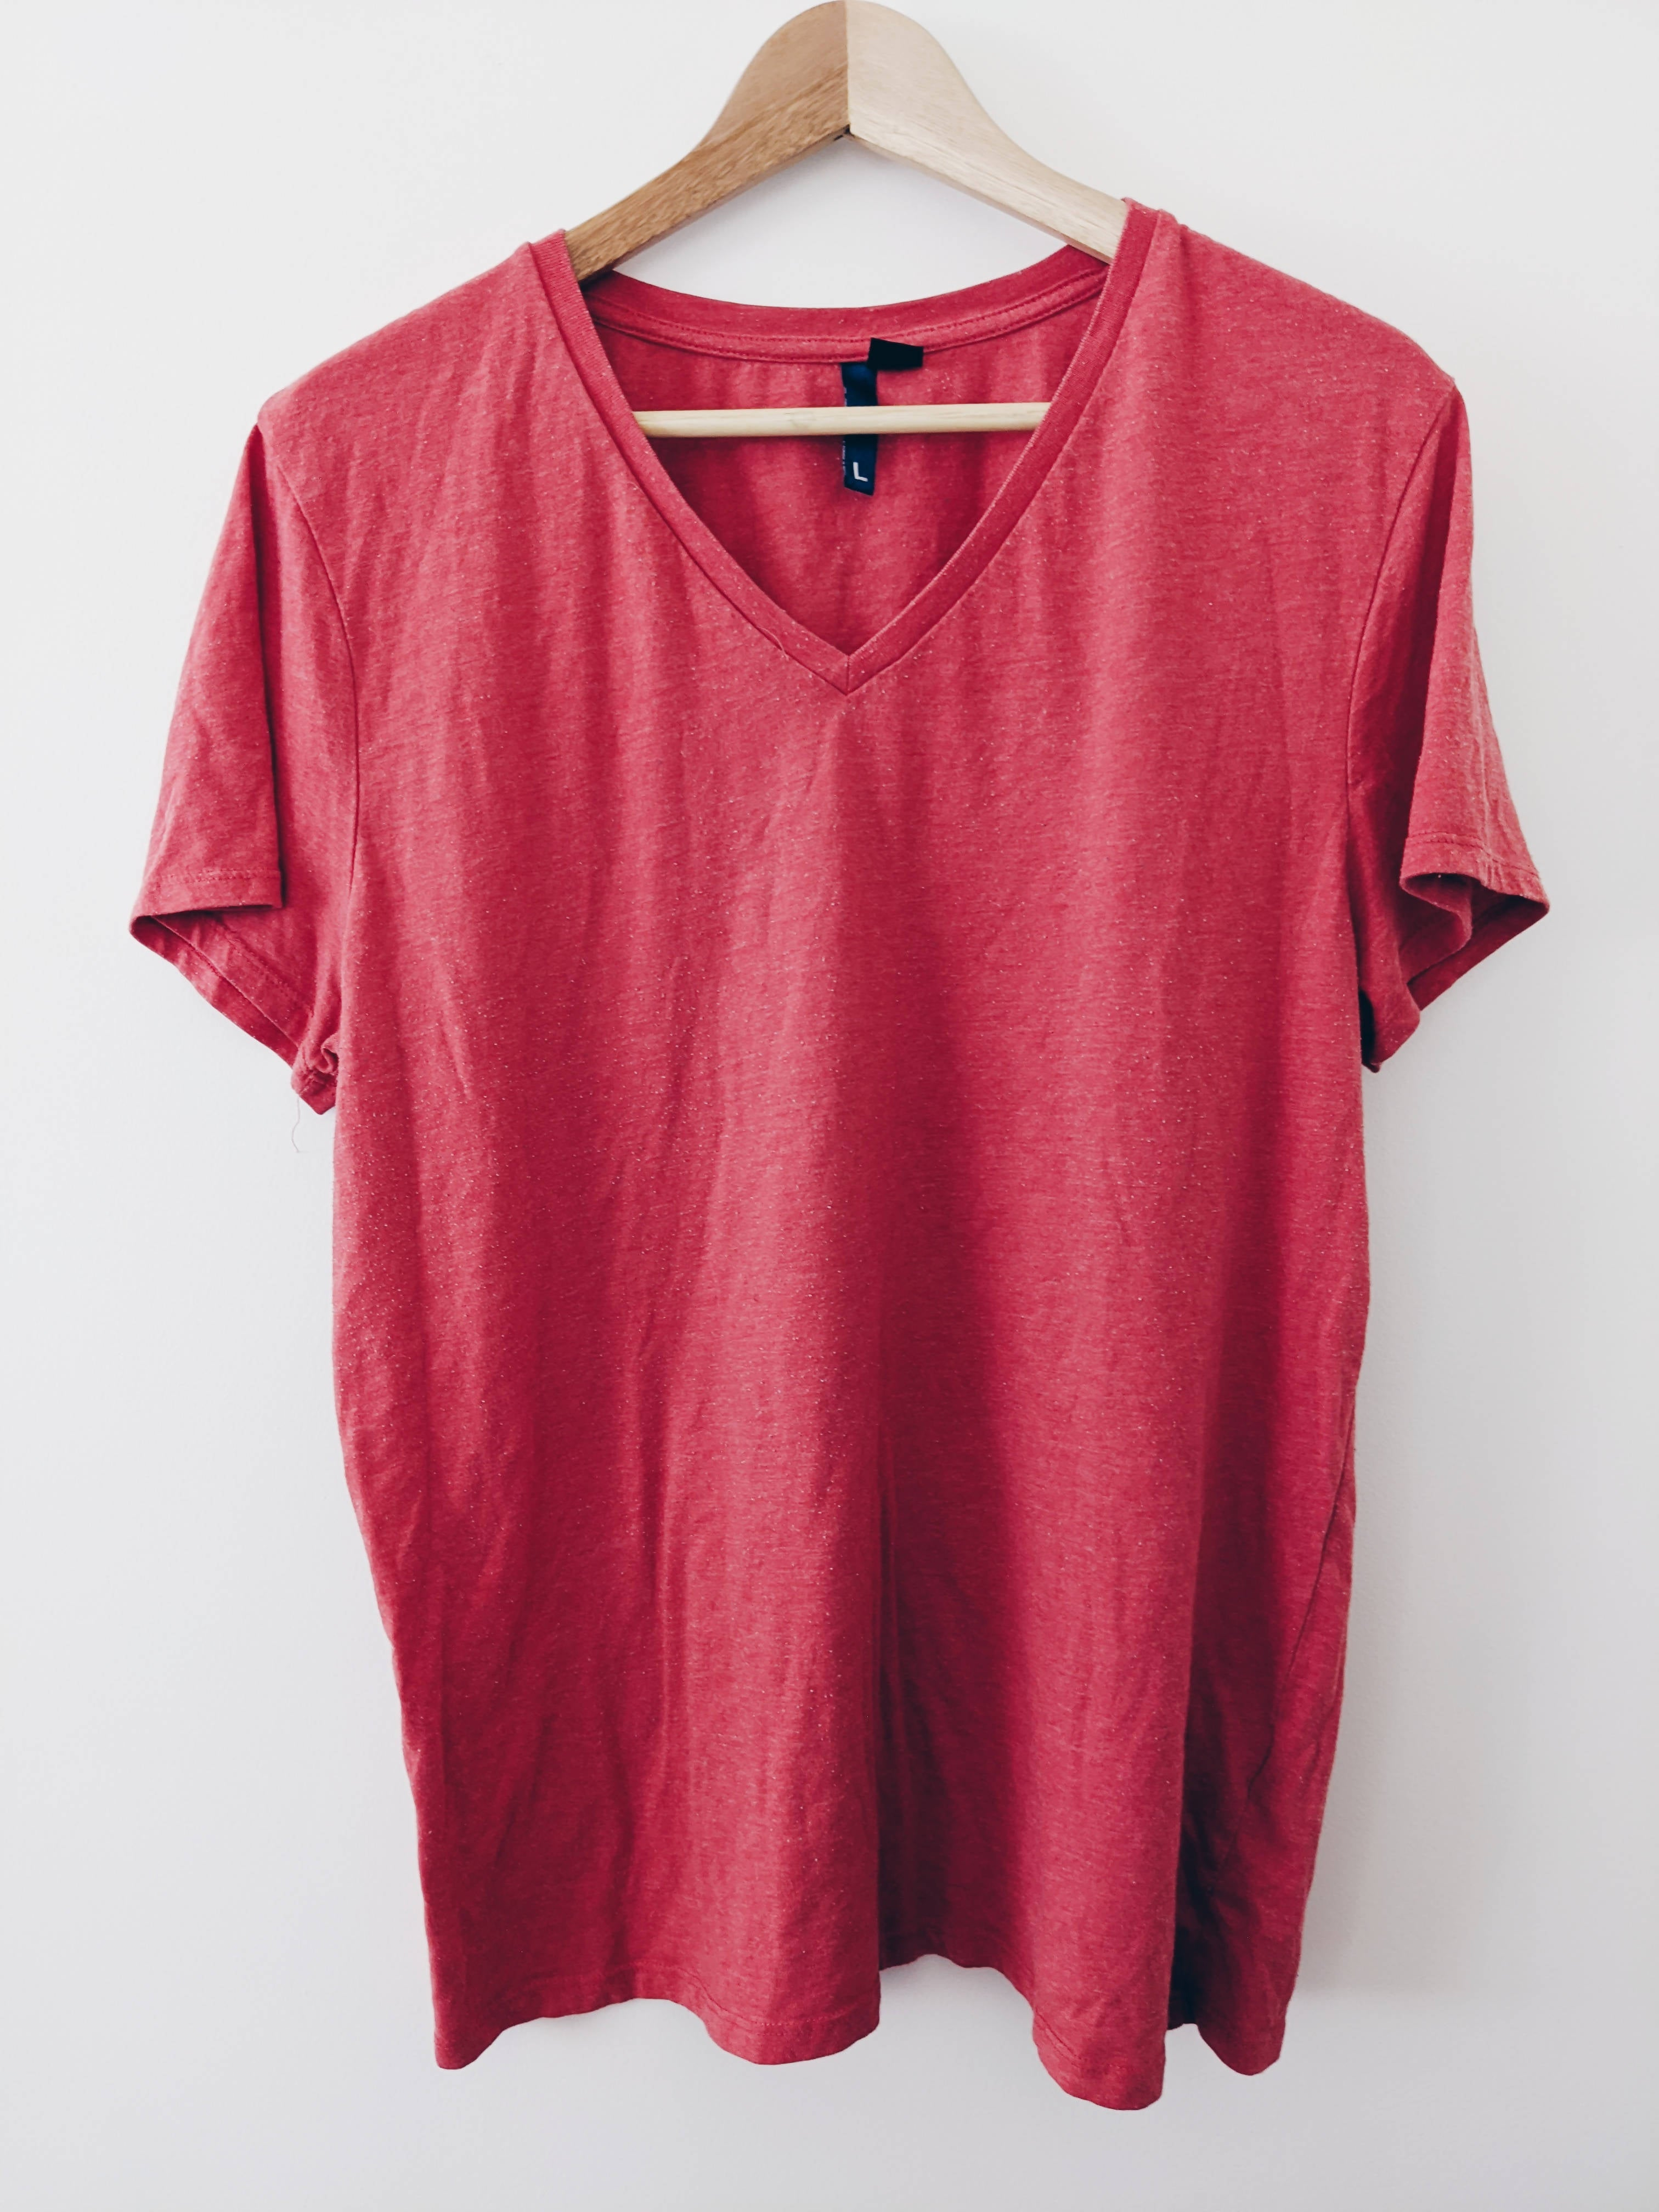 Divided Red tee